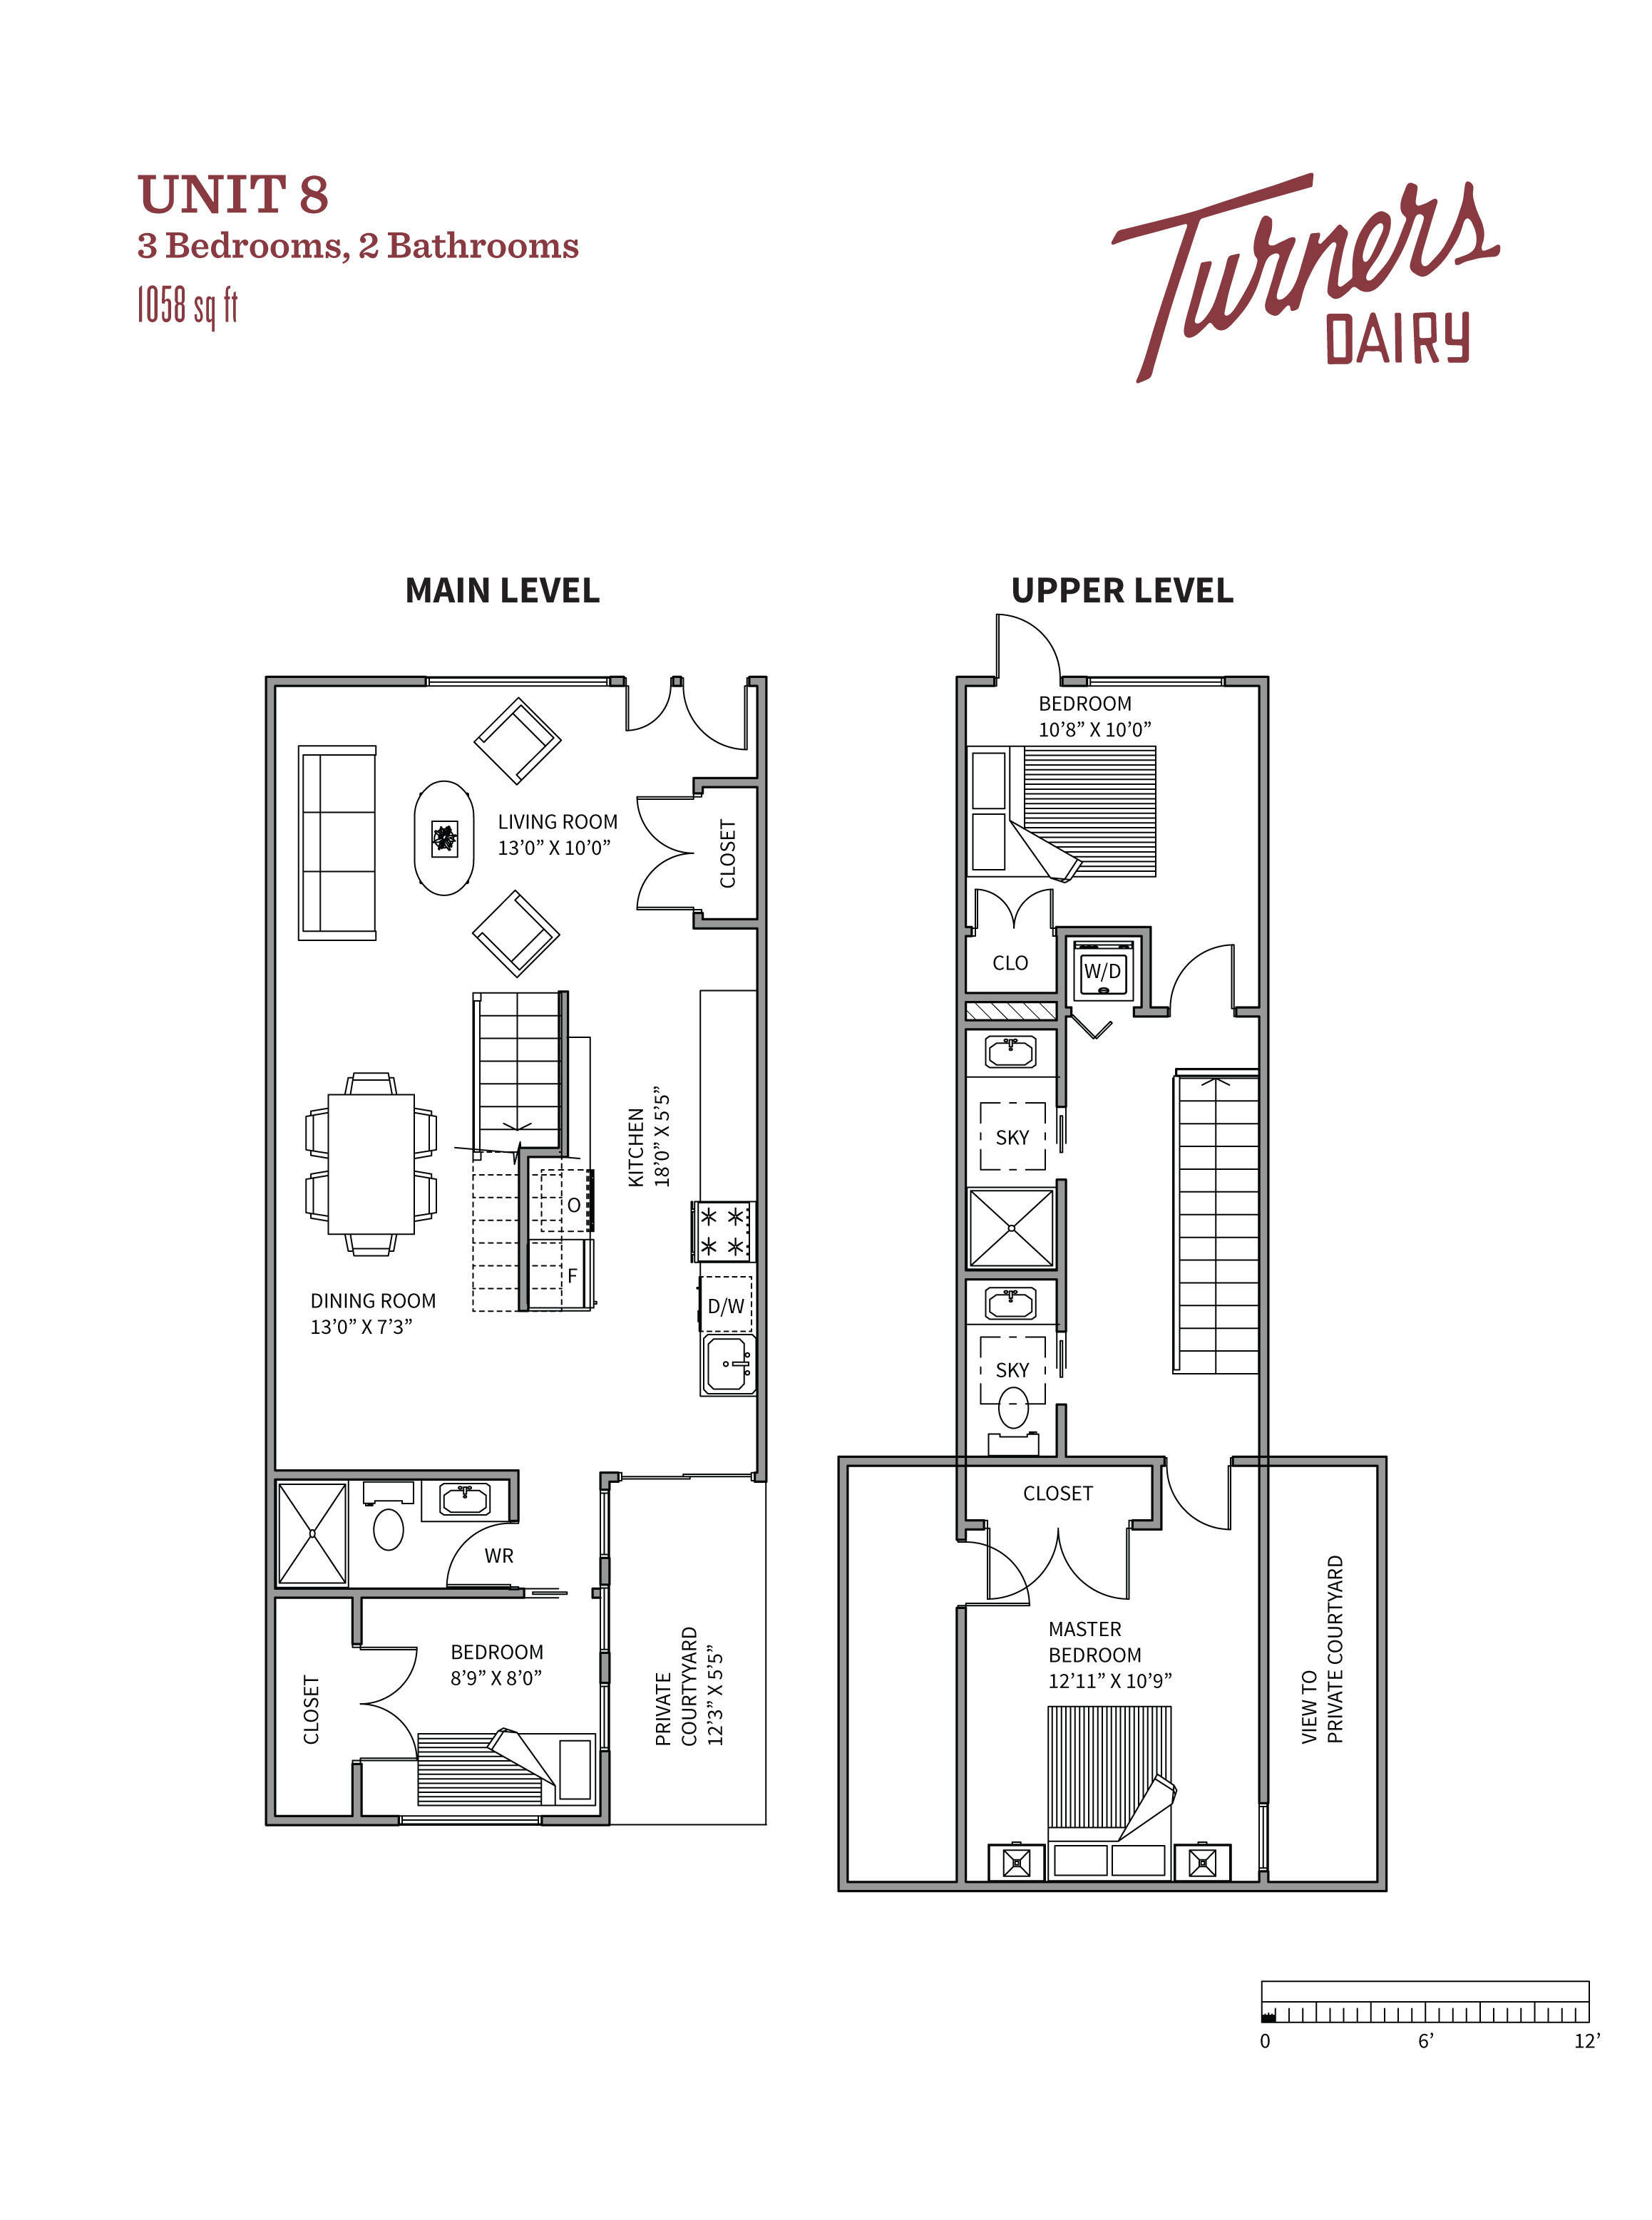 Thumbnail of Unit 8 floorplan of Turners Dairy Riley Park townhomes.